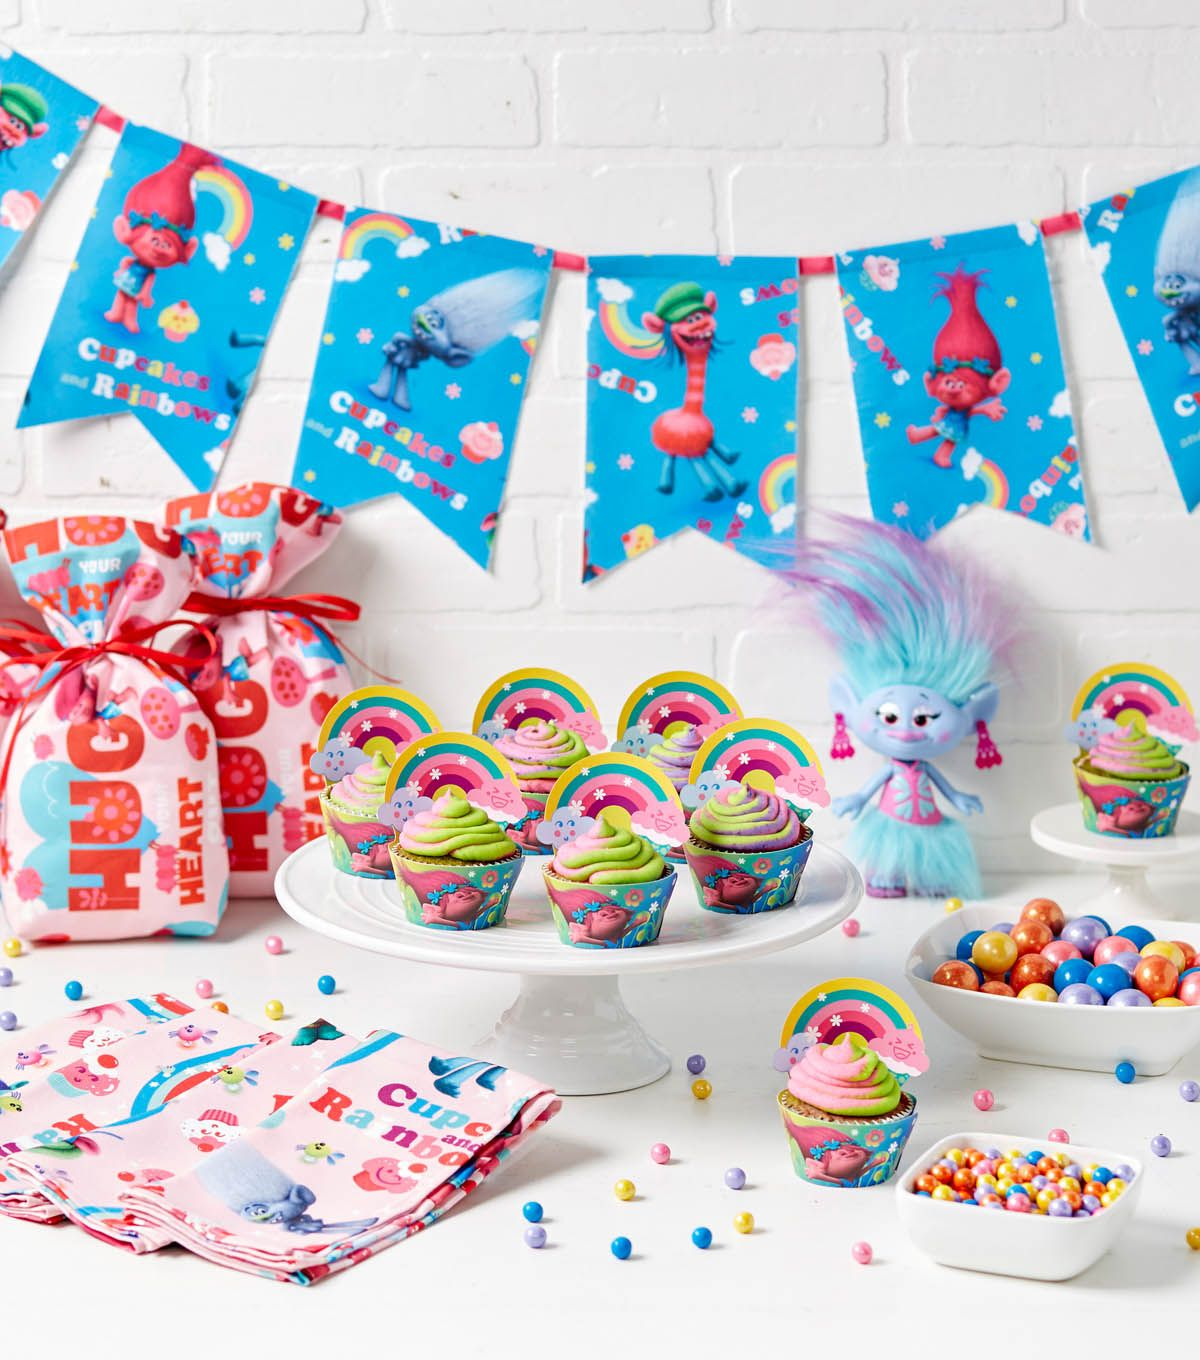 23 'Trolls' Birthday Party Ideas Your Little One Will Flip Over